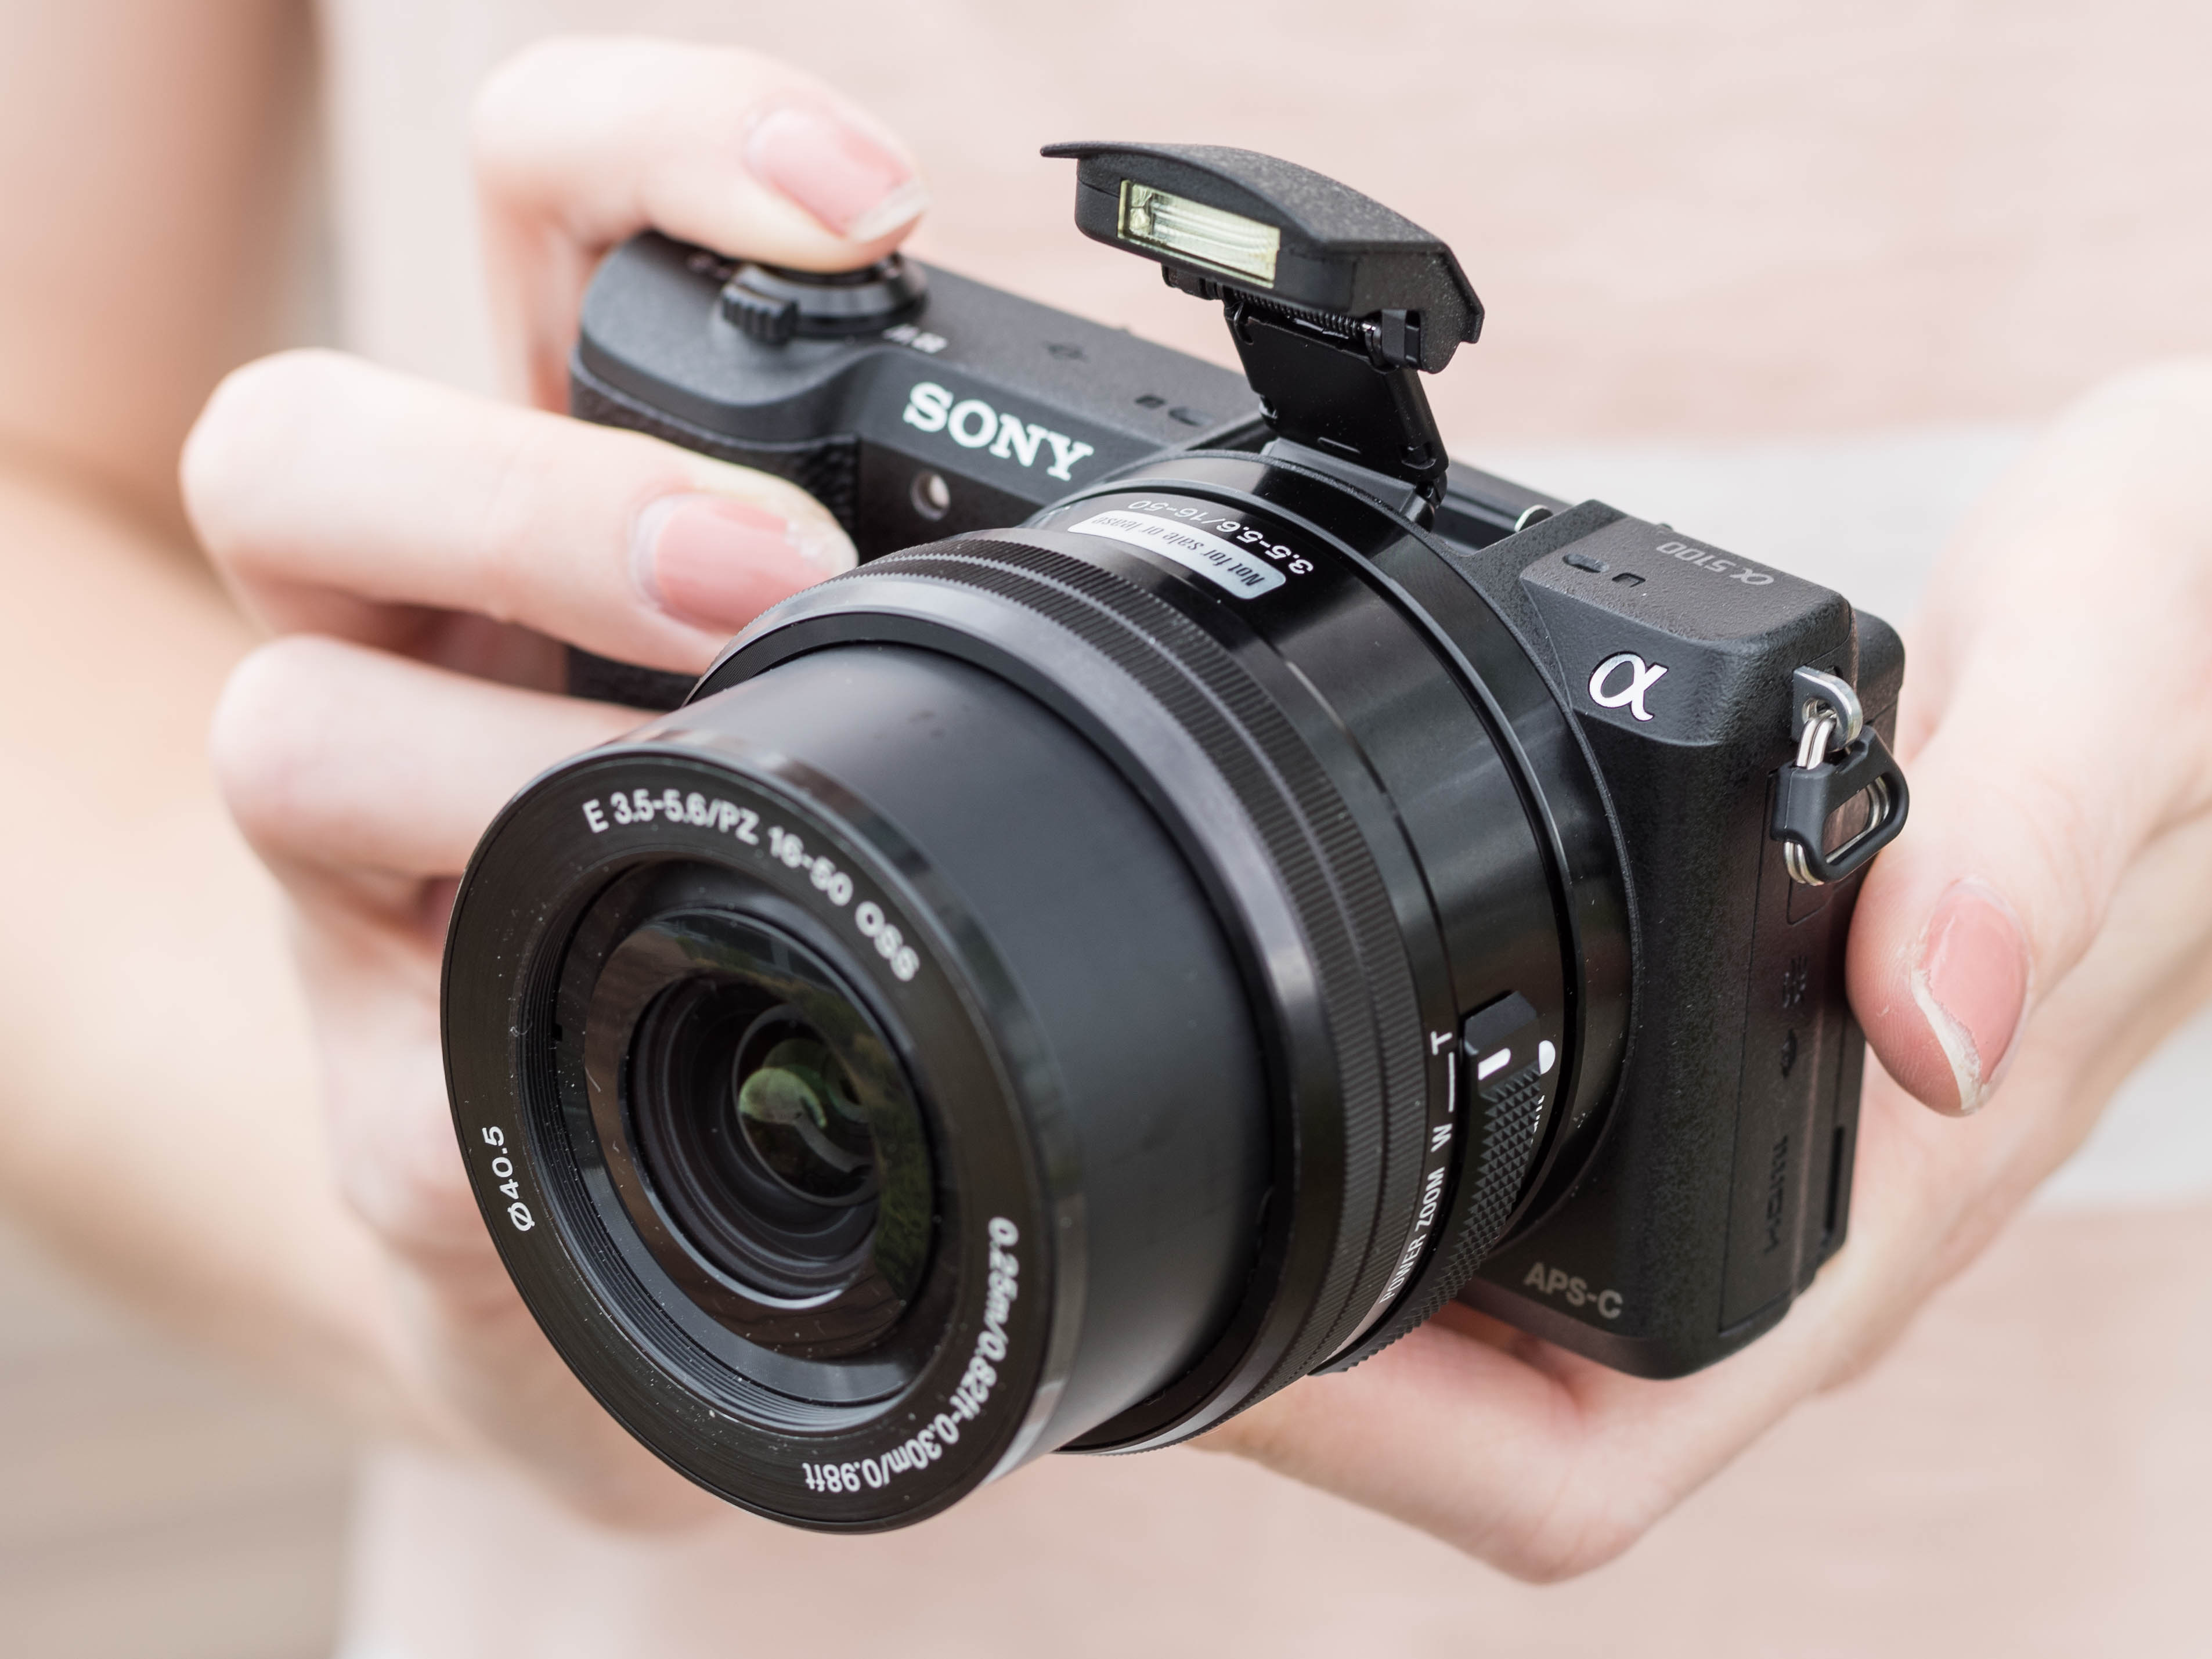 Hands-on with the Sony Alpha a5100: Digital Photography Review